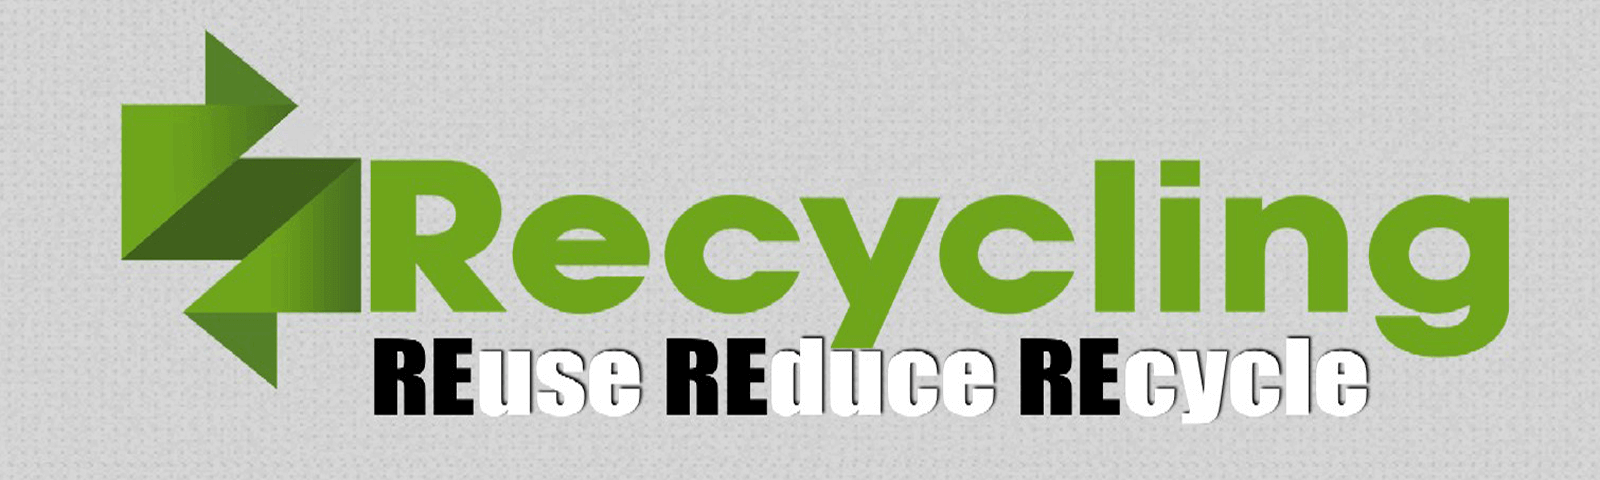 Wolverhampton-recycling-waste-1-1